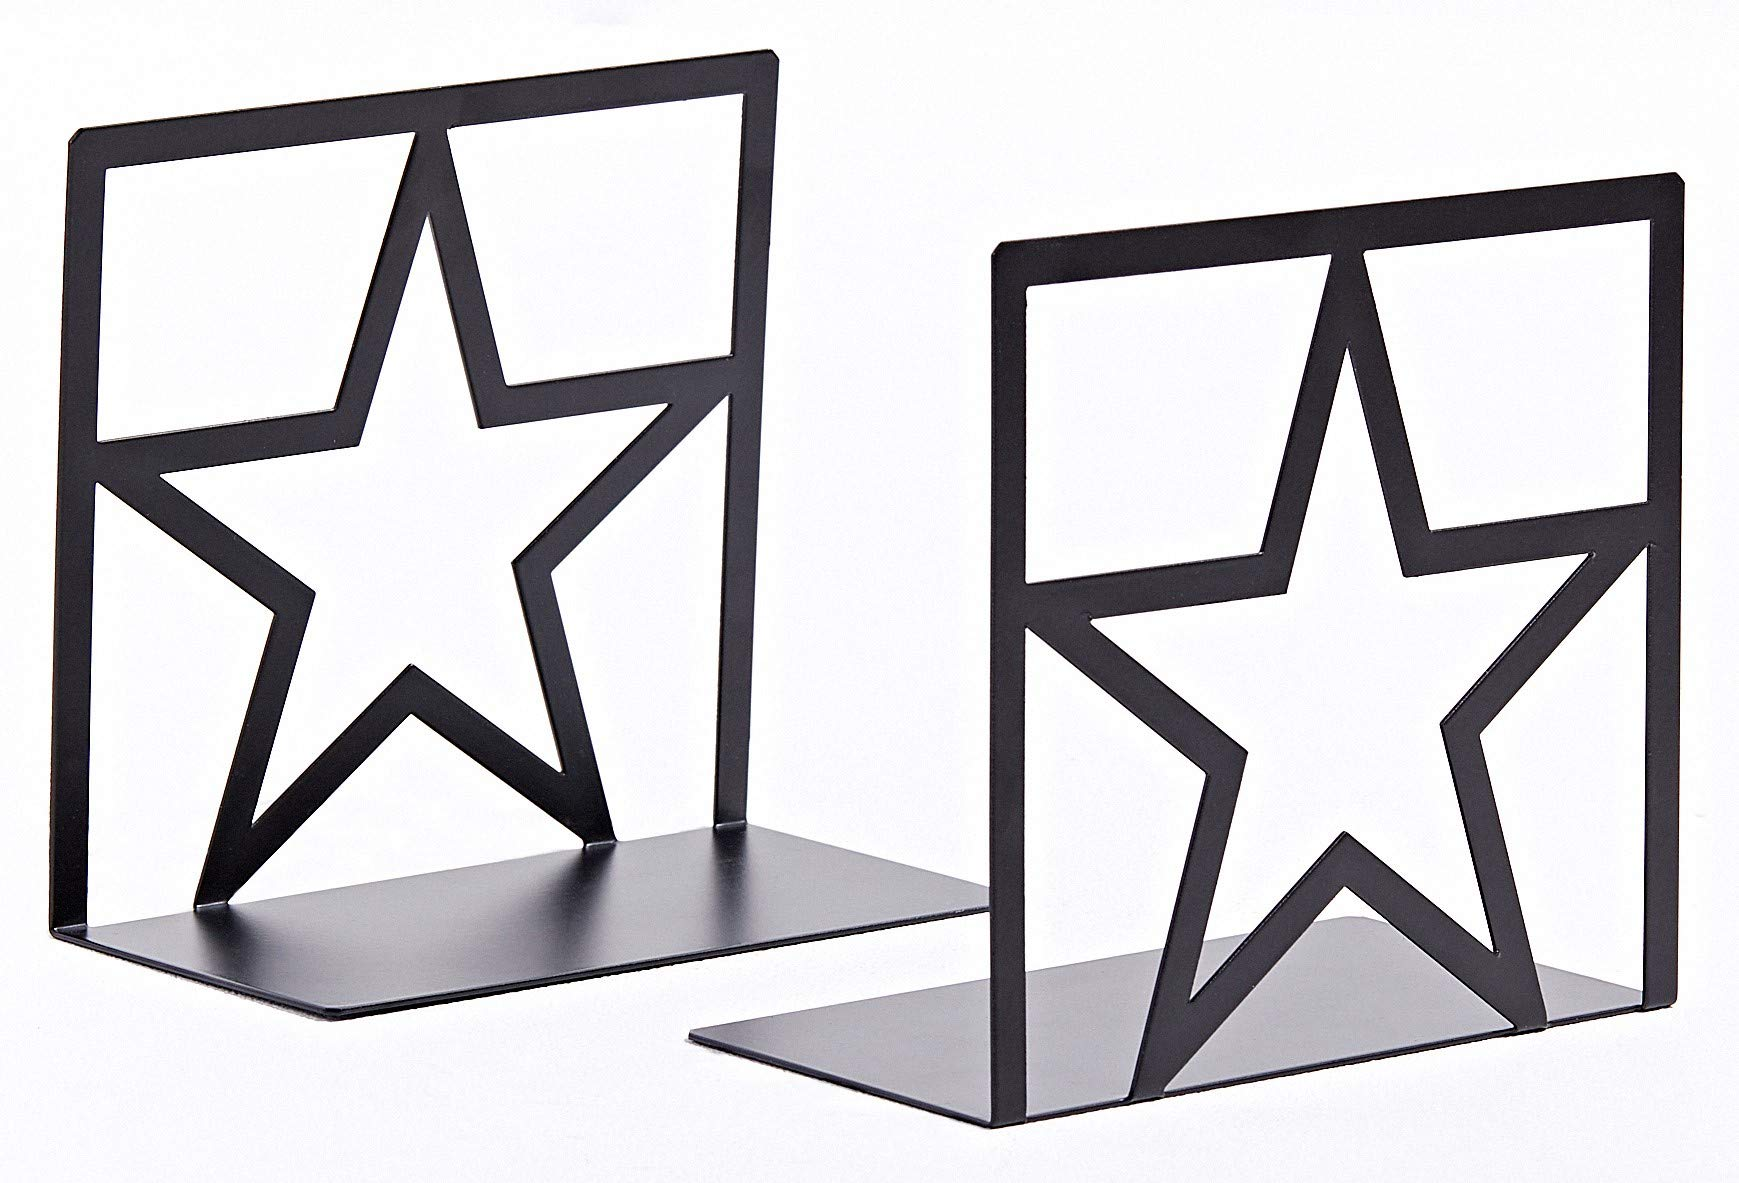 Geomod Decorative Star Metal Bookends (Black, 1 Pair) Book Ends for Tables, Desks, Shelves | Fits Tall, Hardback Books by Geomod